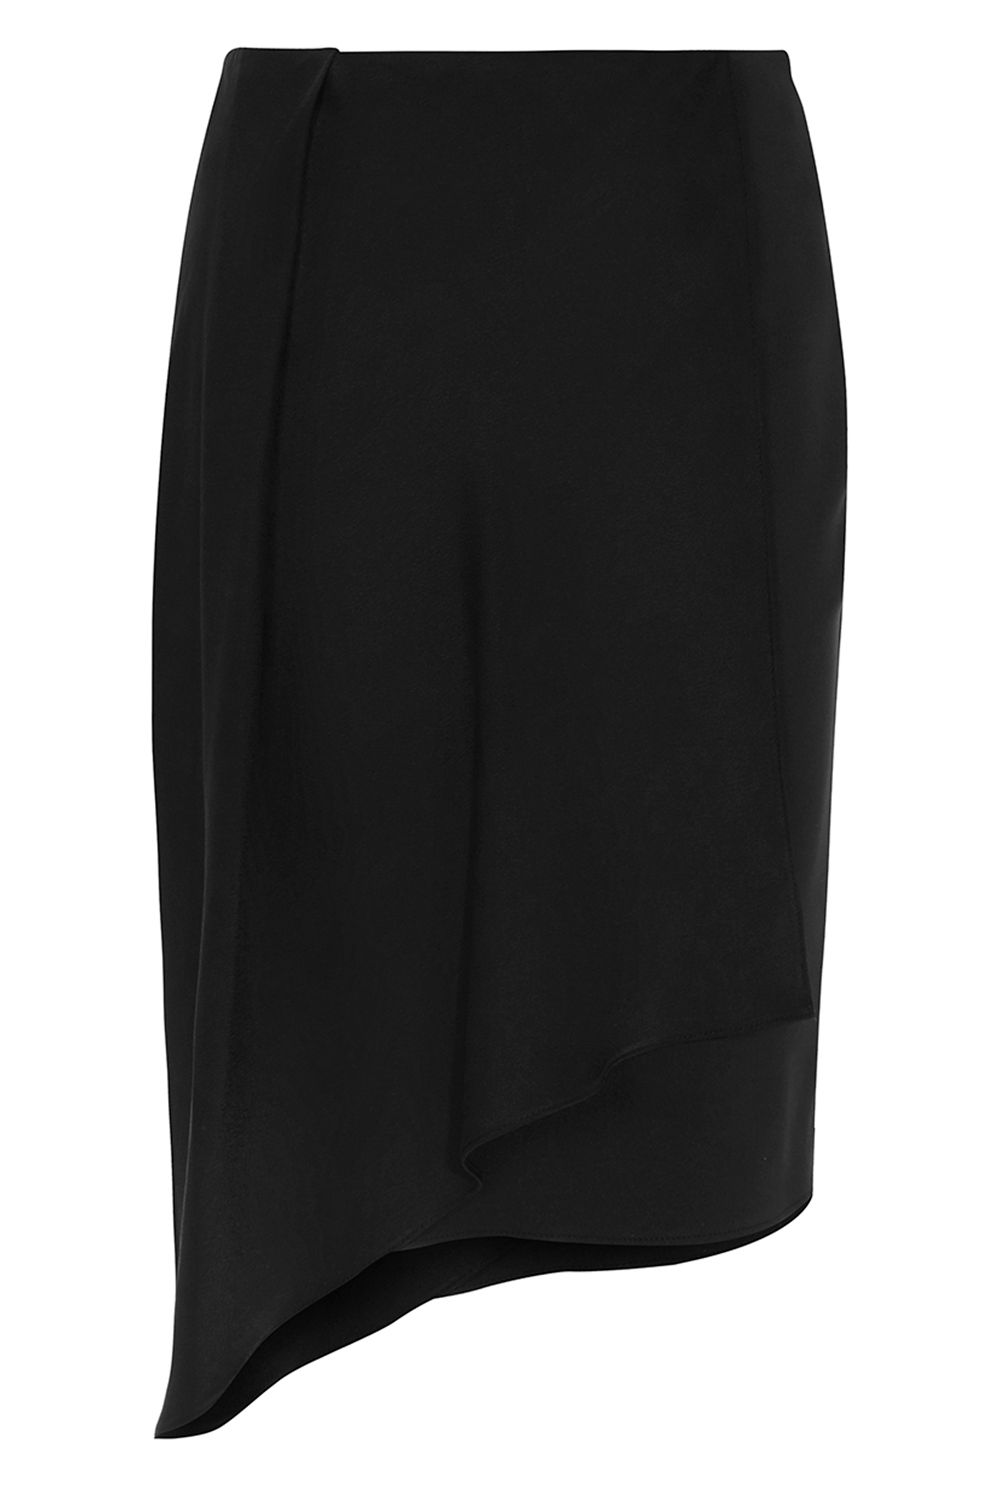 Coast Mindi Overlay Skirt, Black